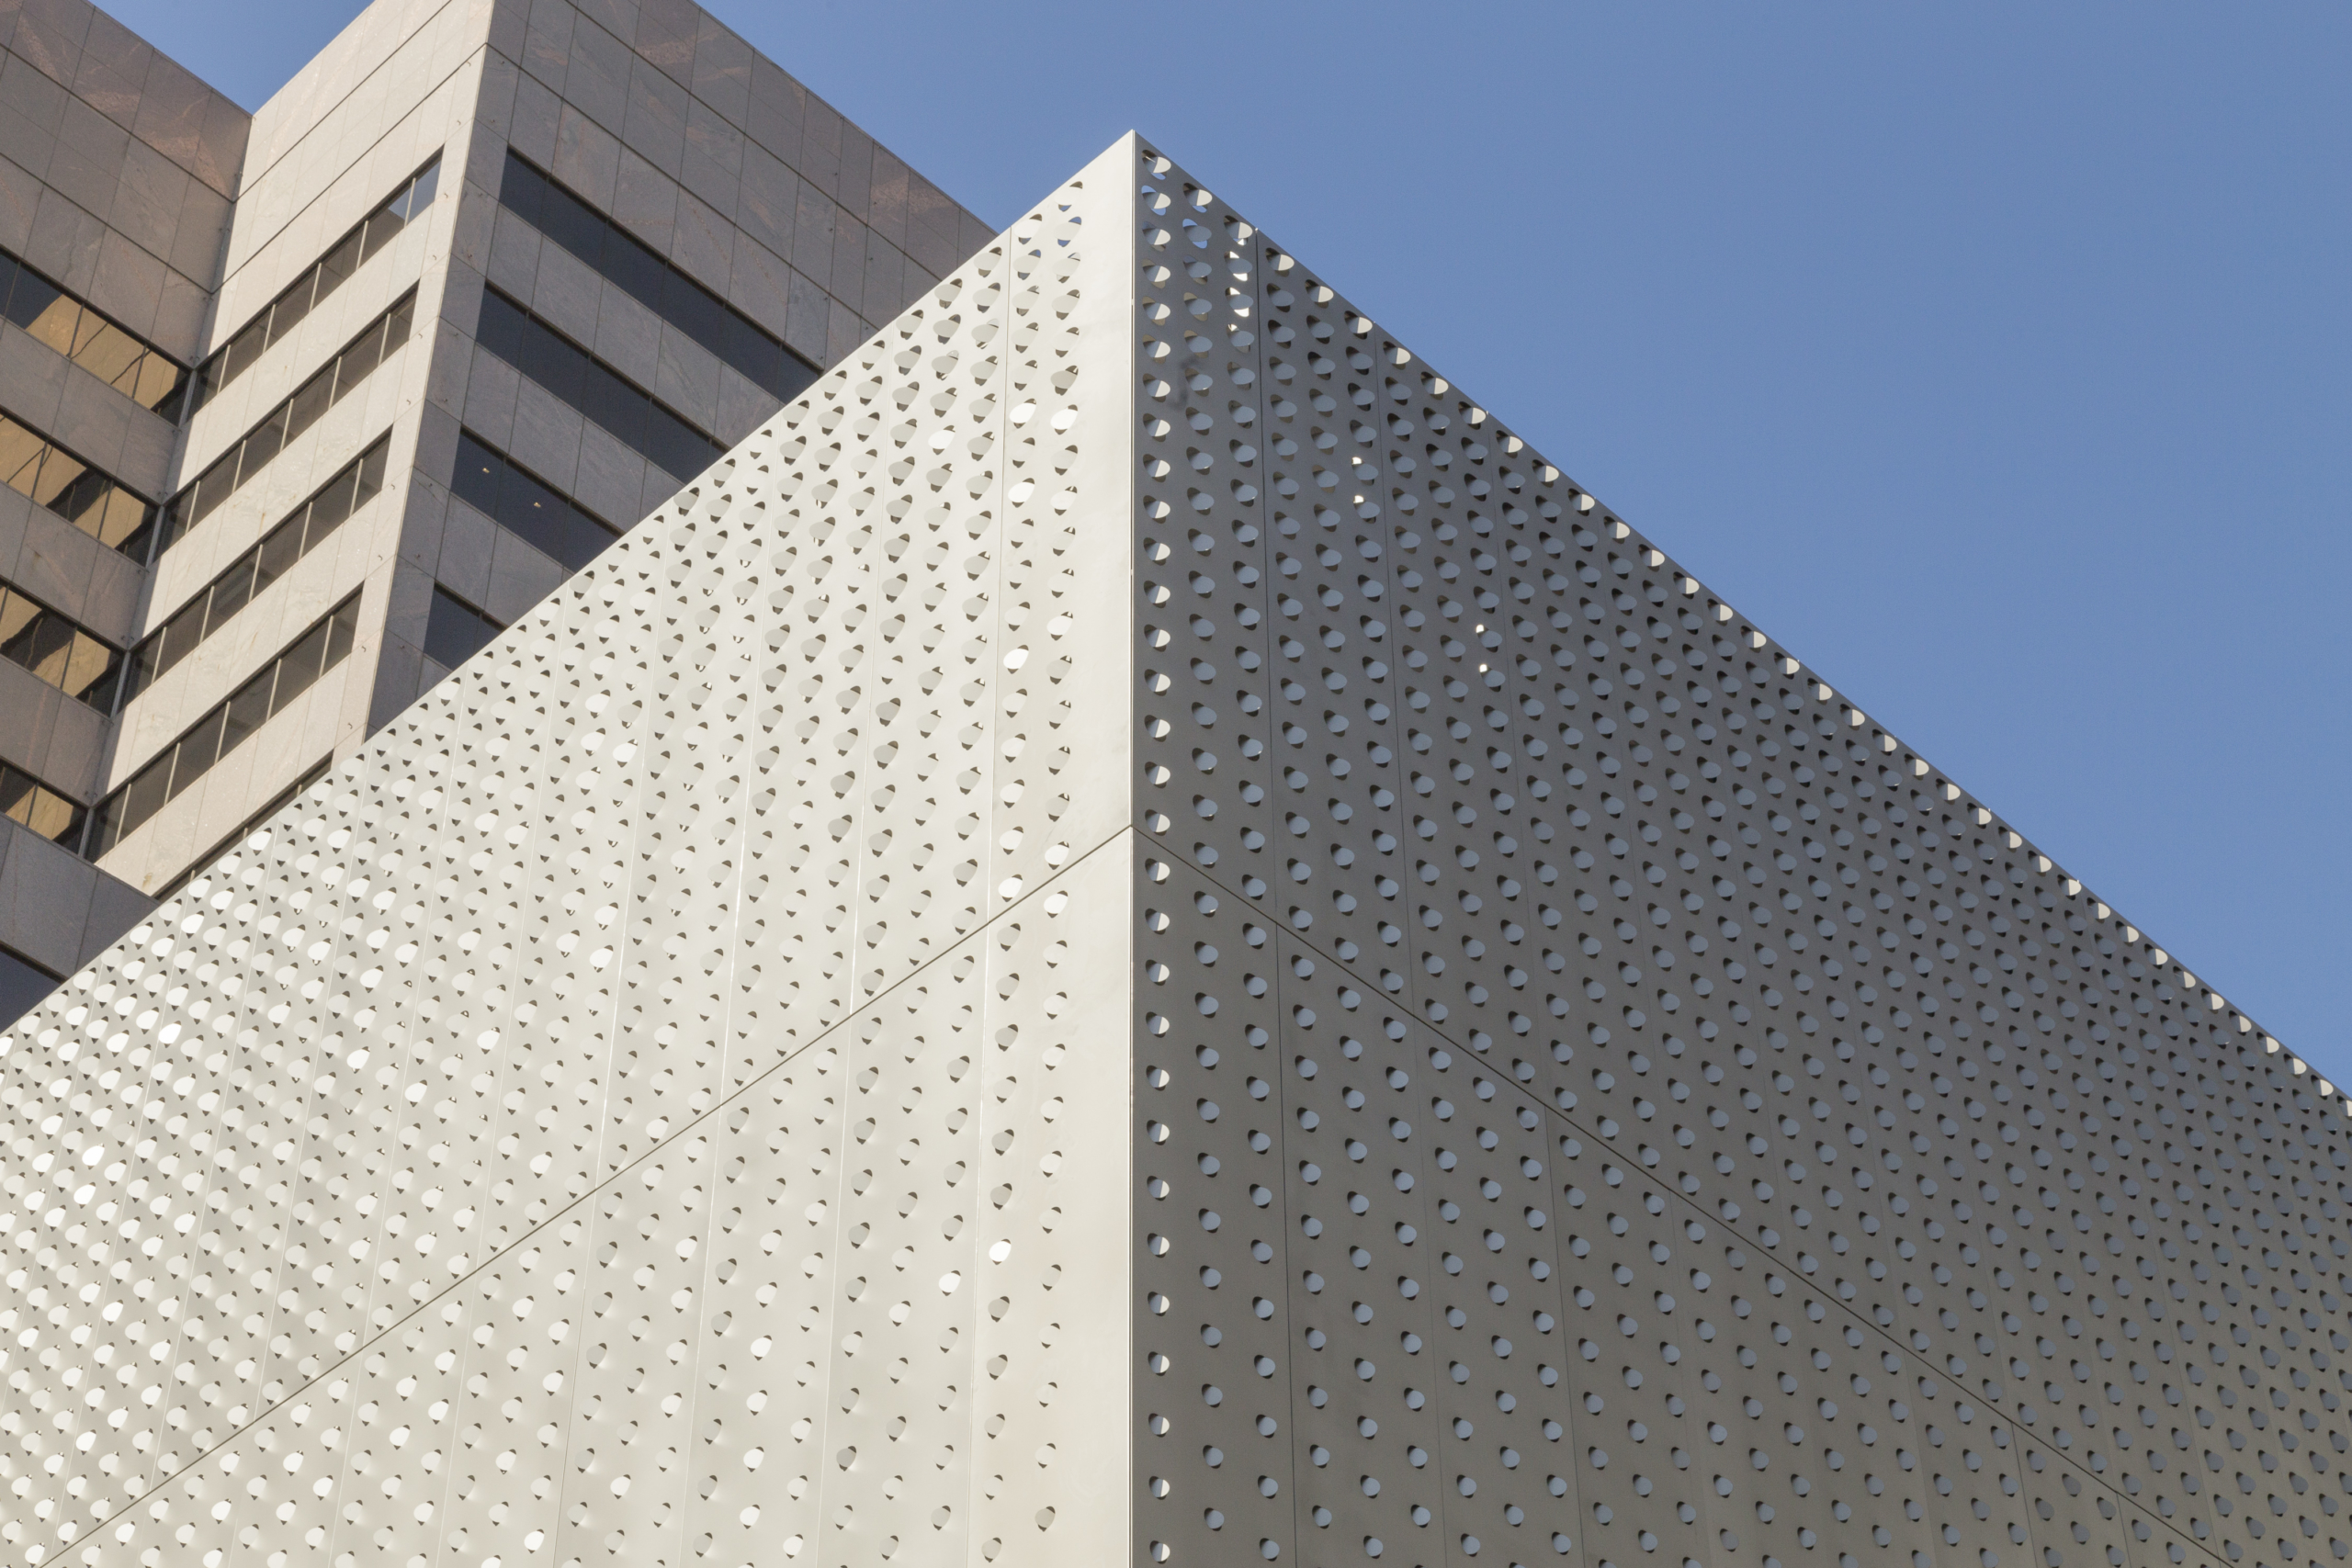 Louvered perforated panels catch and direct sunlight.